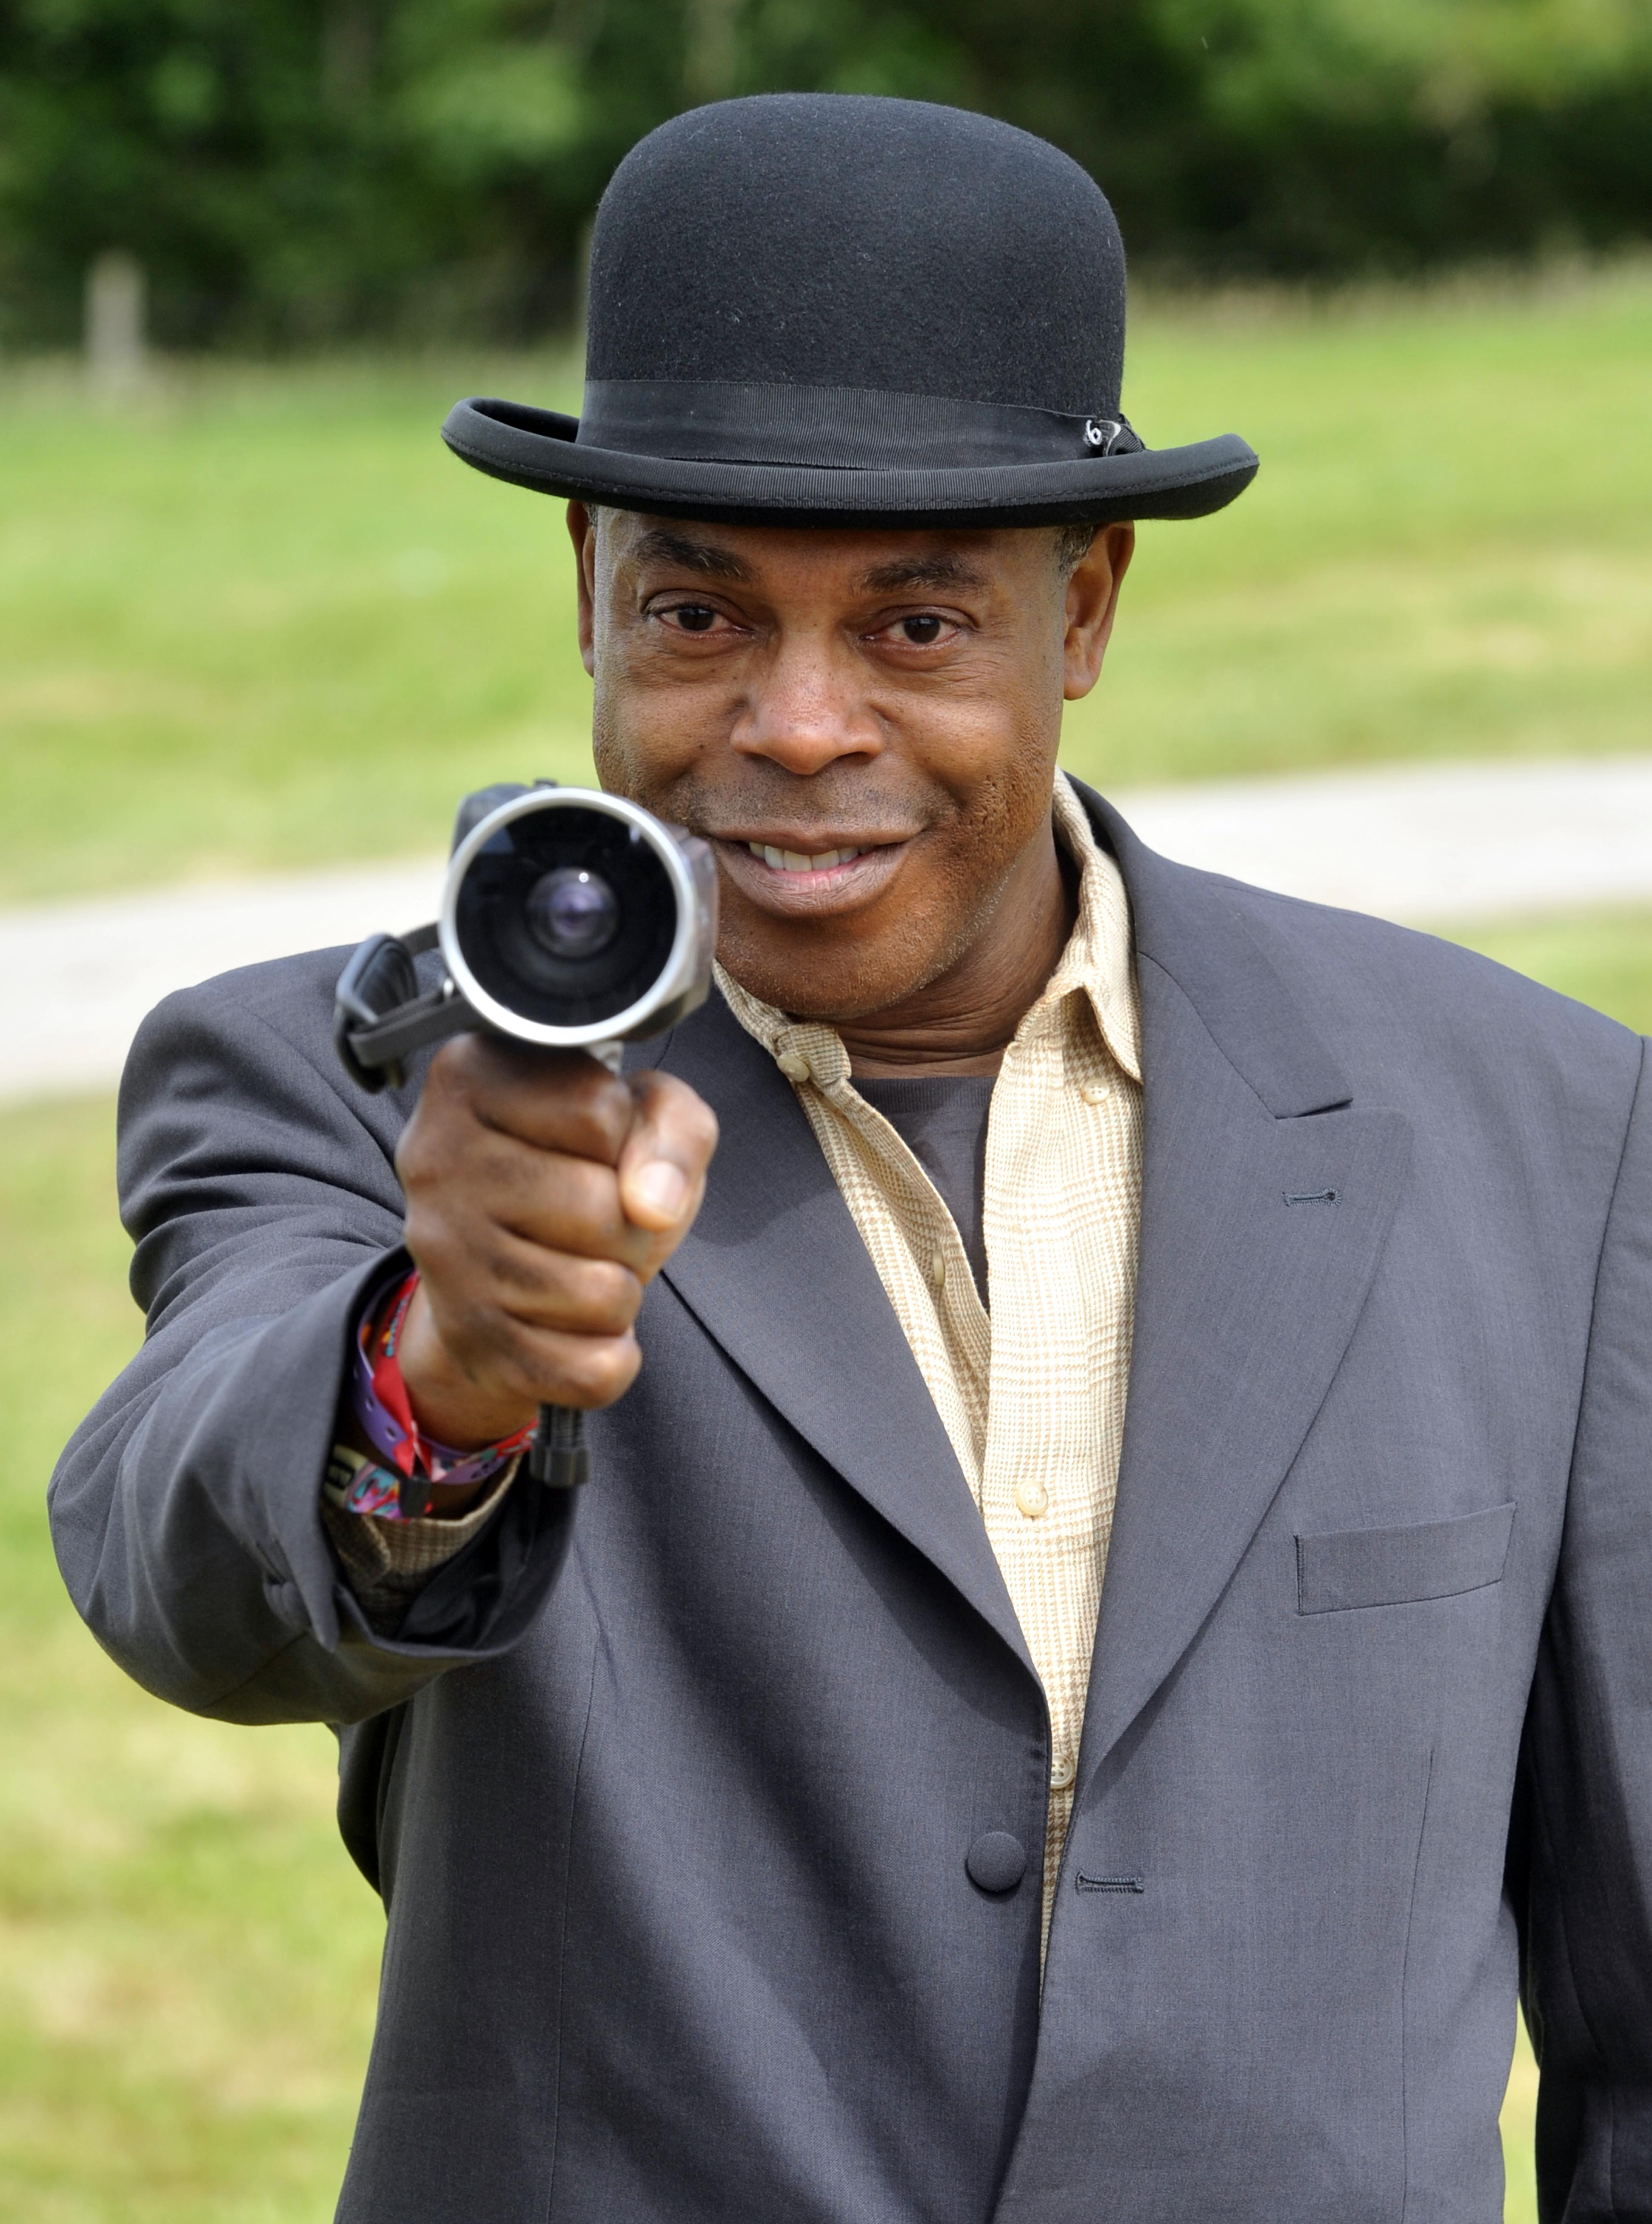 Michael Winslow michael winslow